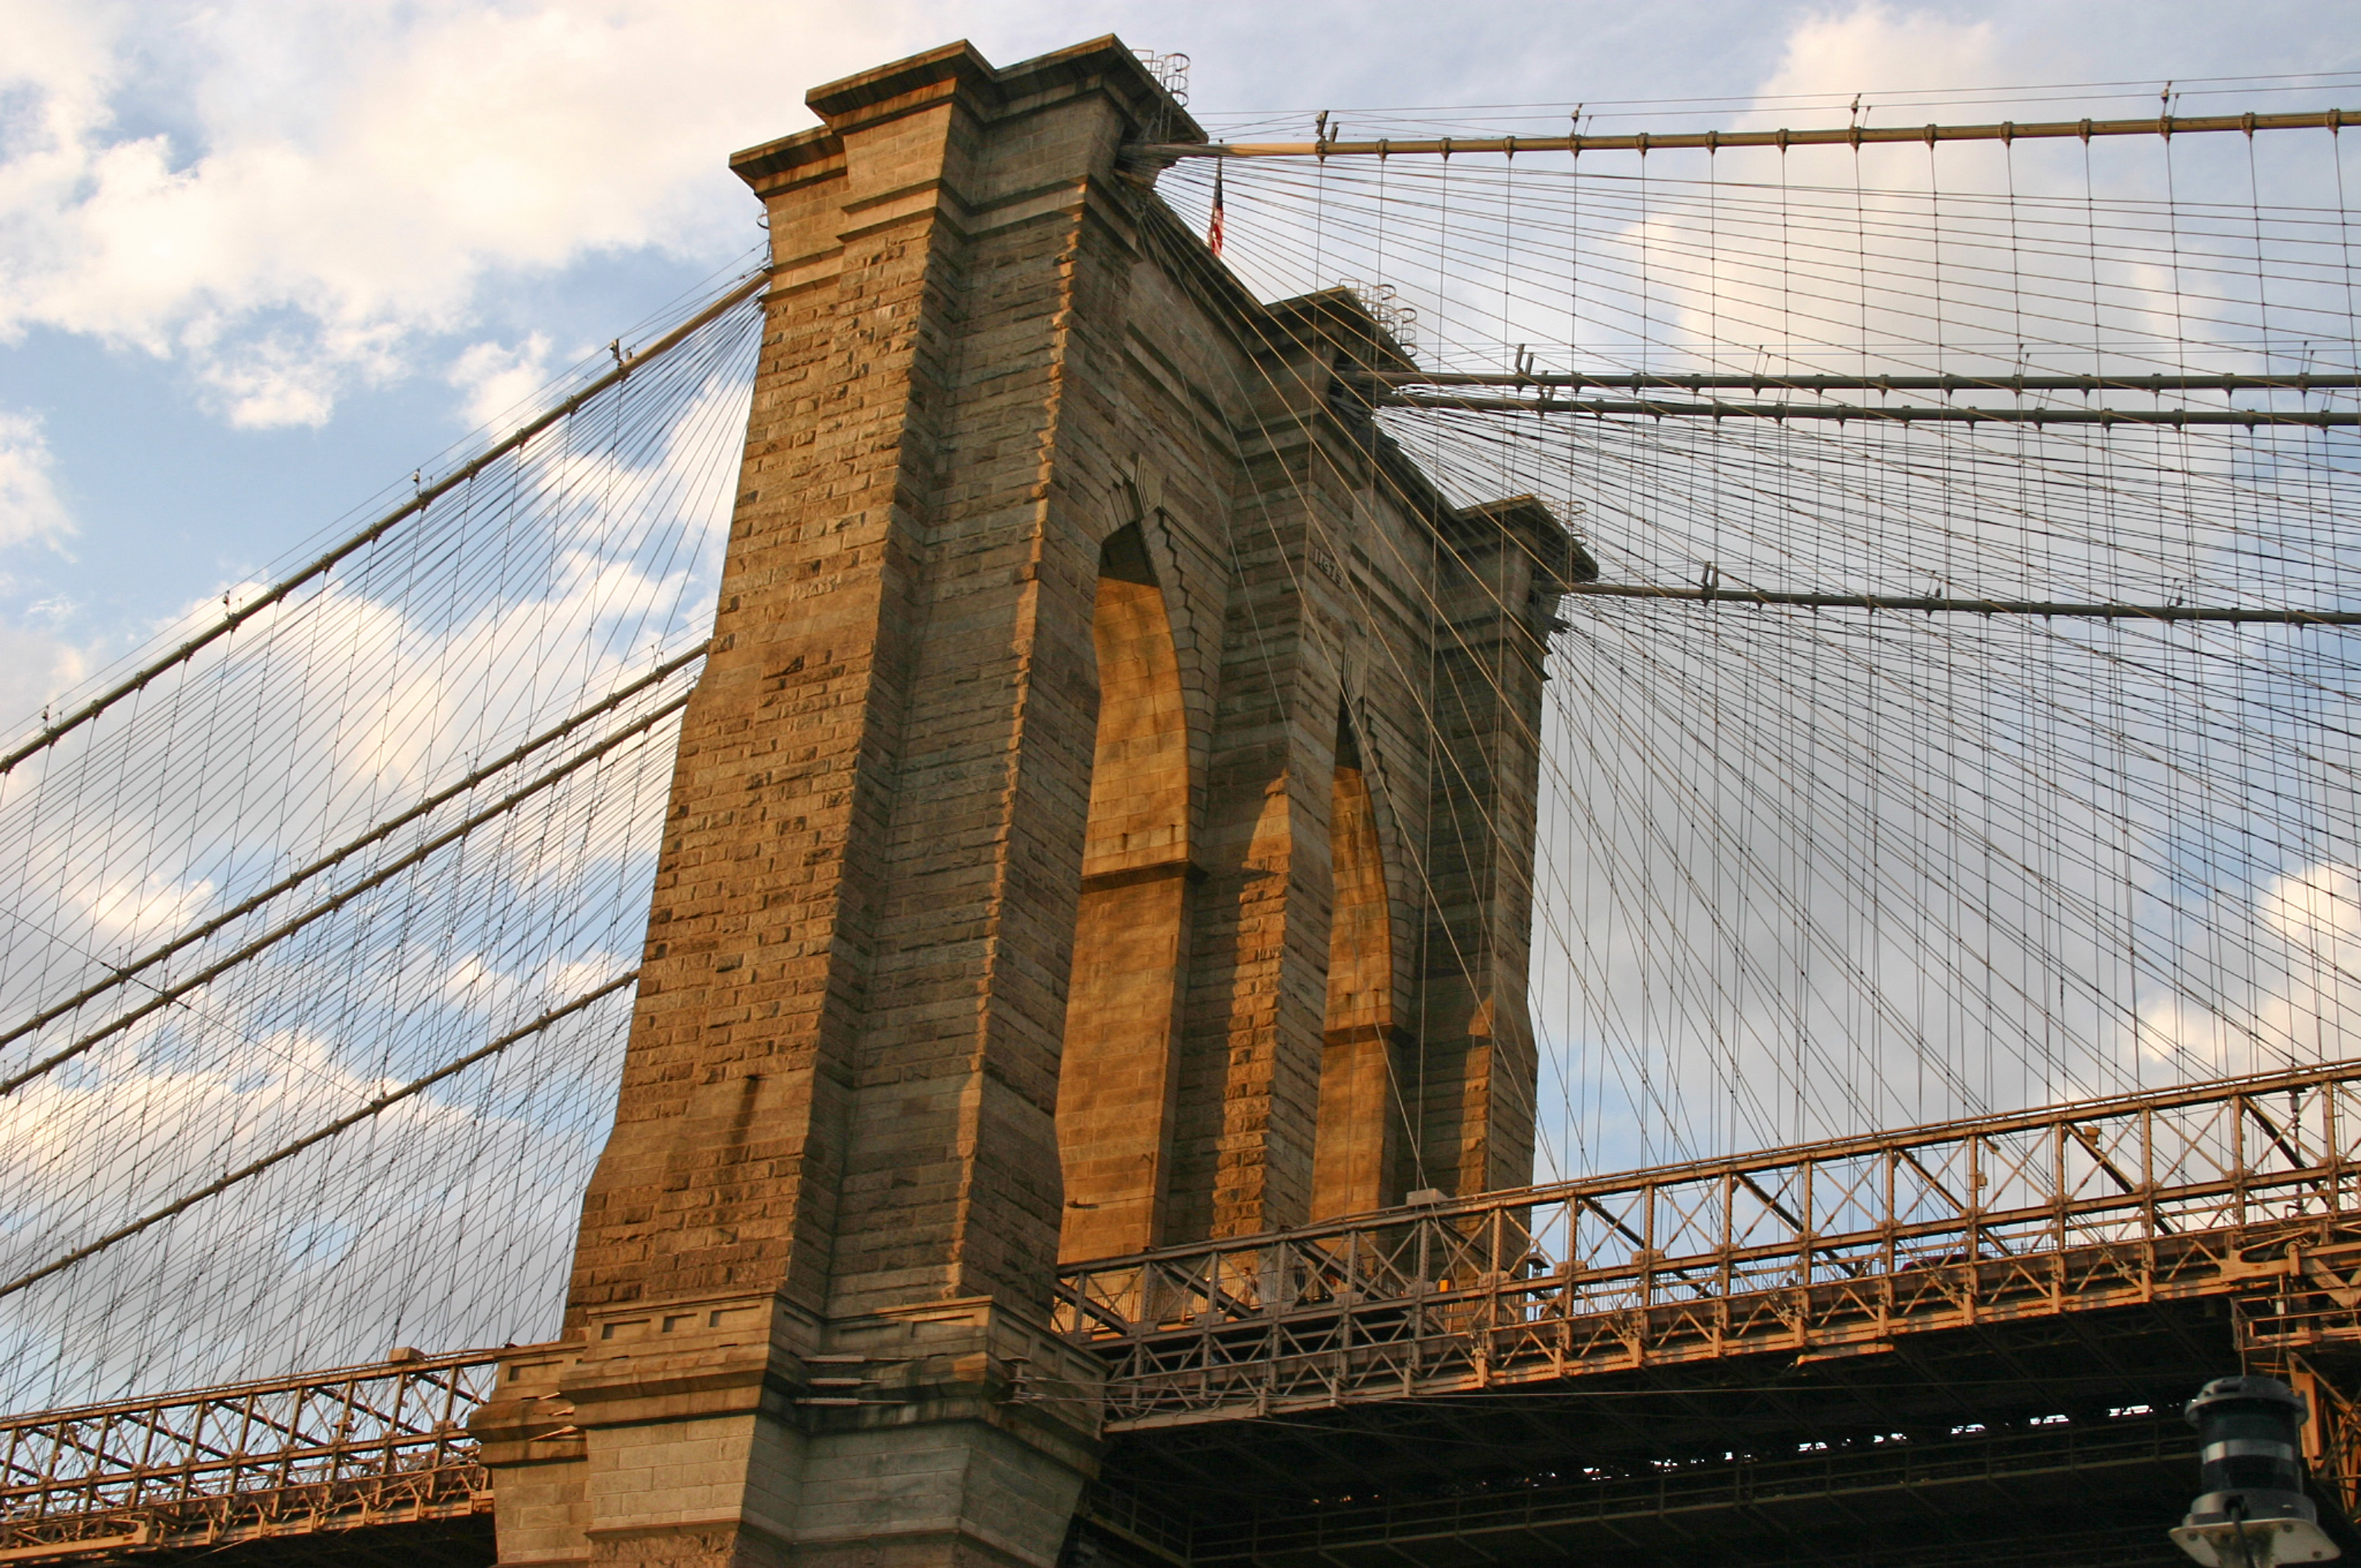 Brooklyn Bridge 2007 6 30 (1)